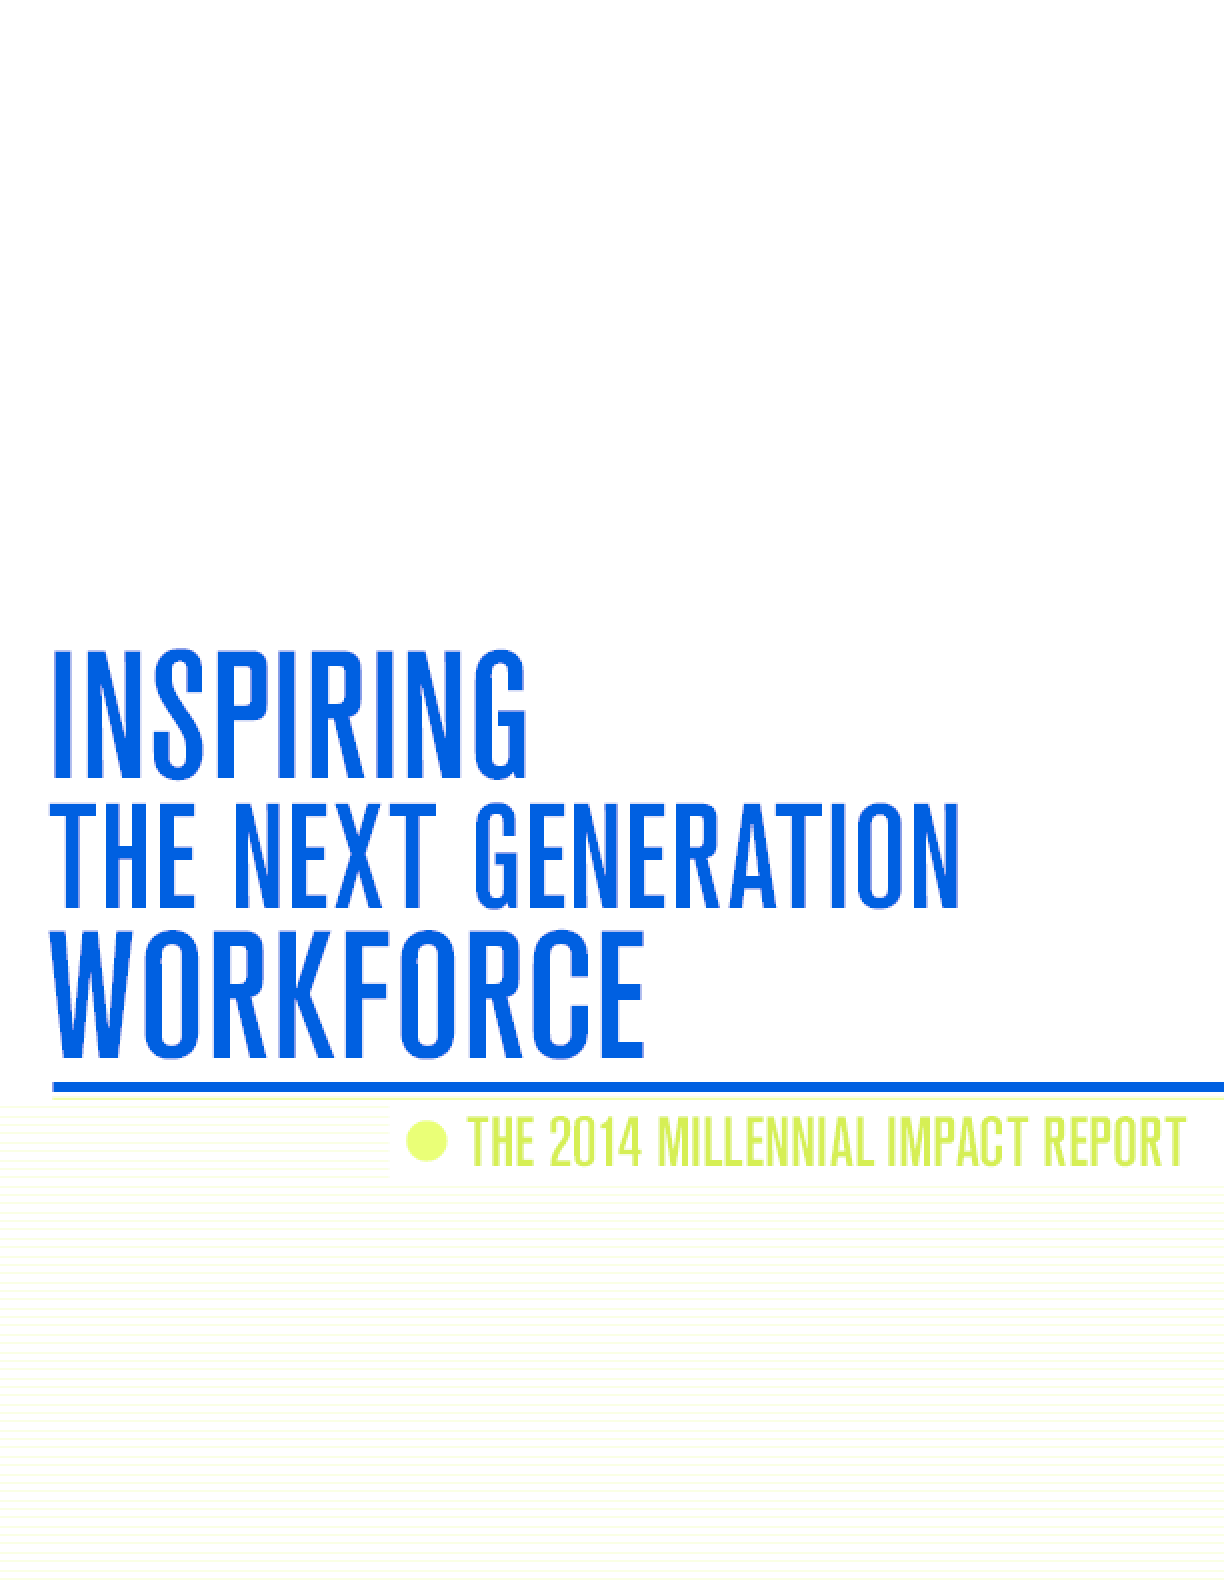 Inspiring the Next Generation Workforce: The 2014 Millennial Impact Report